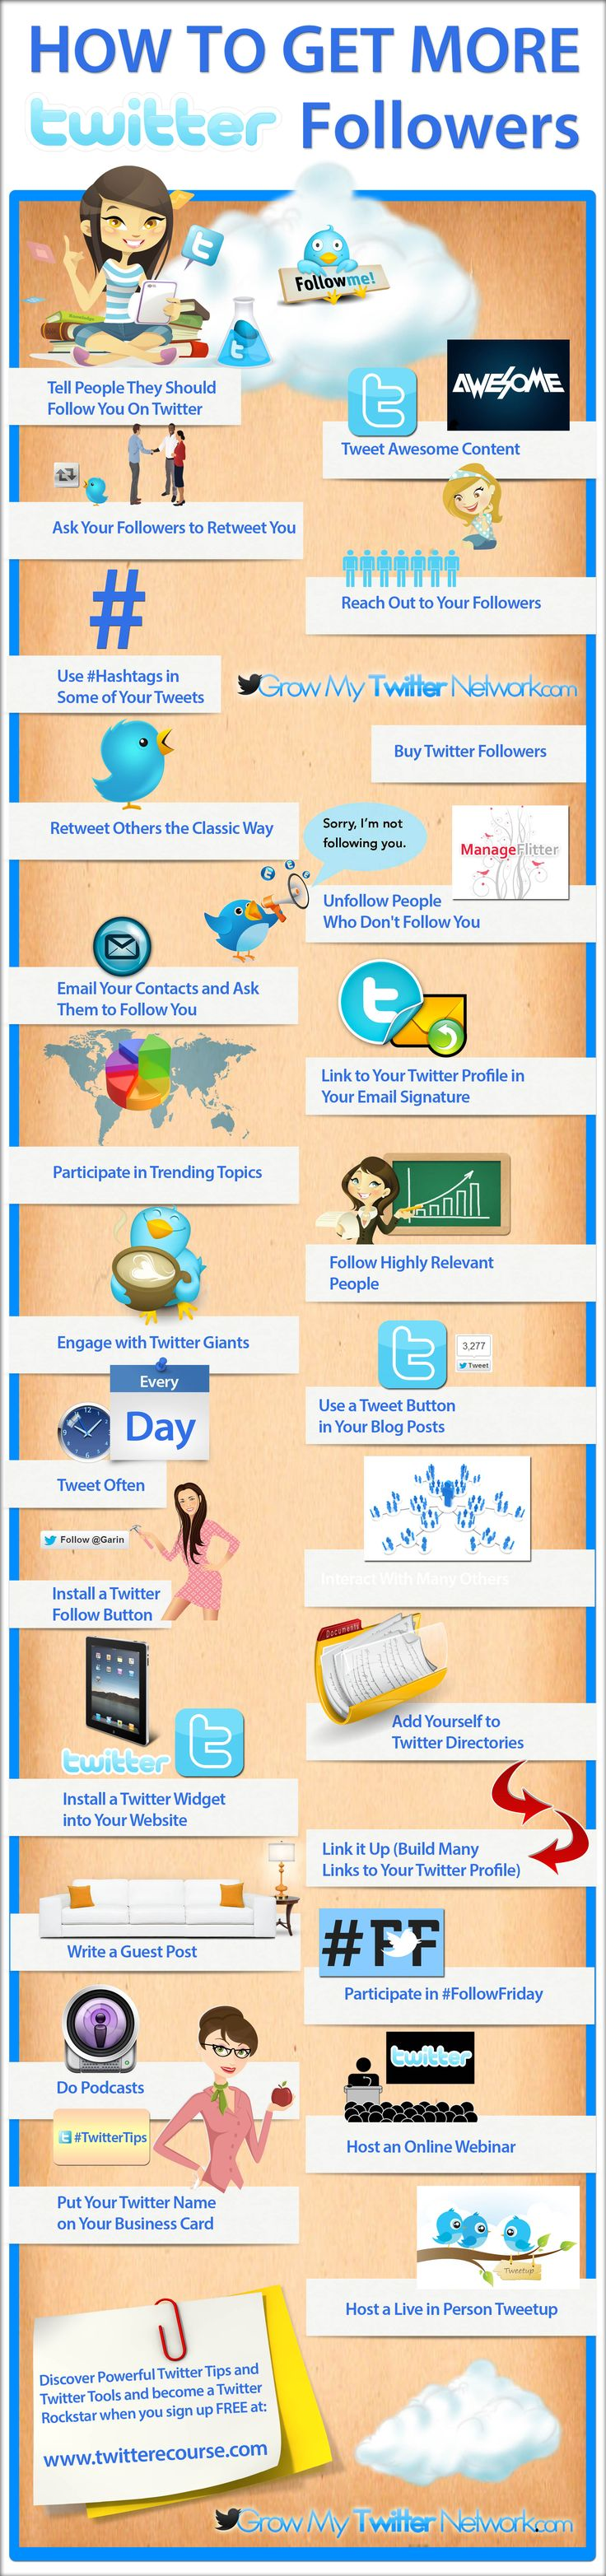 Check out this awesome new Infographic and Discover how to get more Twitter followers and easily grow a powerful Twitter network! http://twittertoolsb